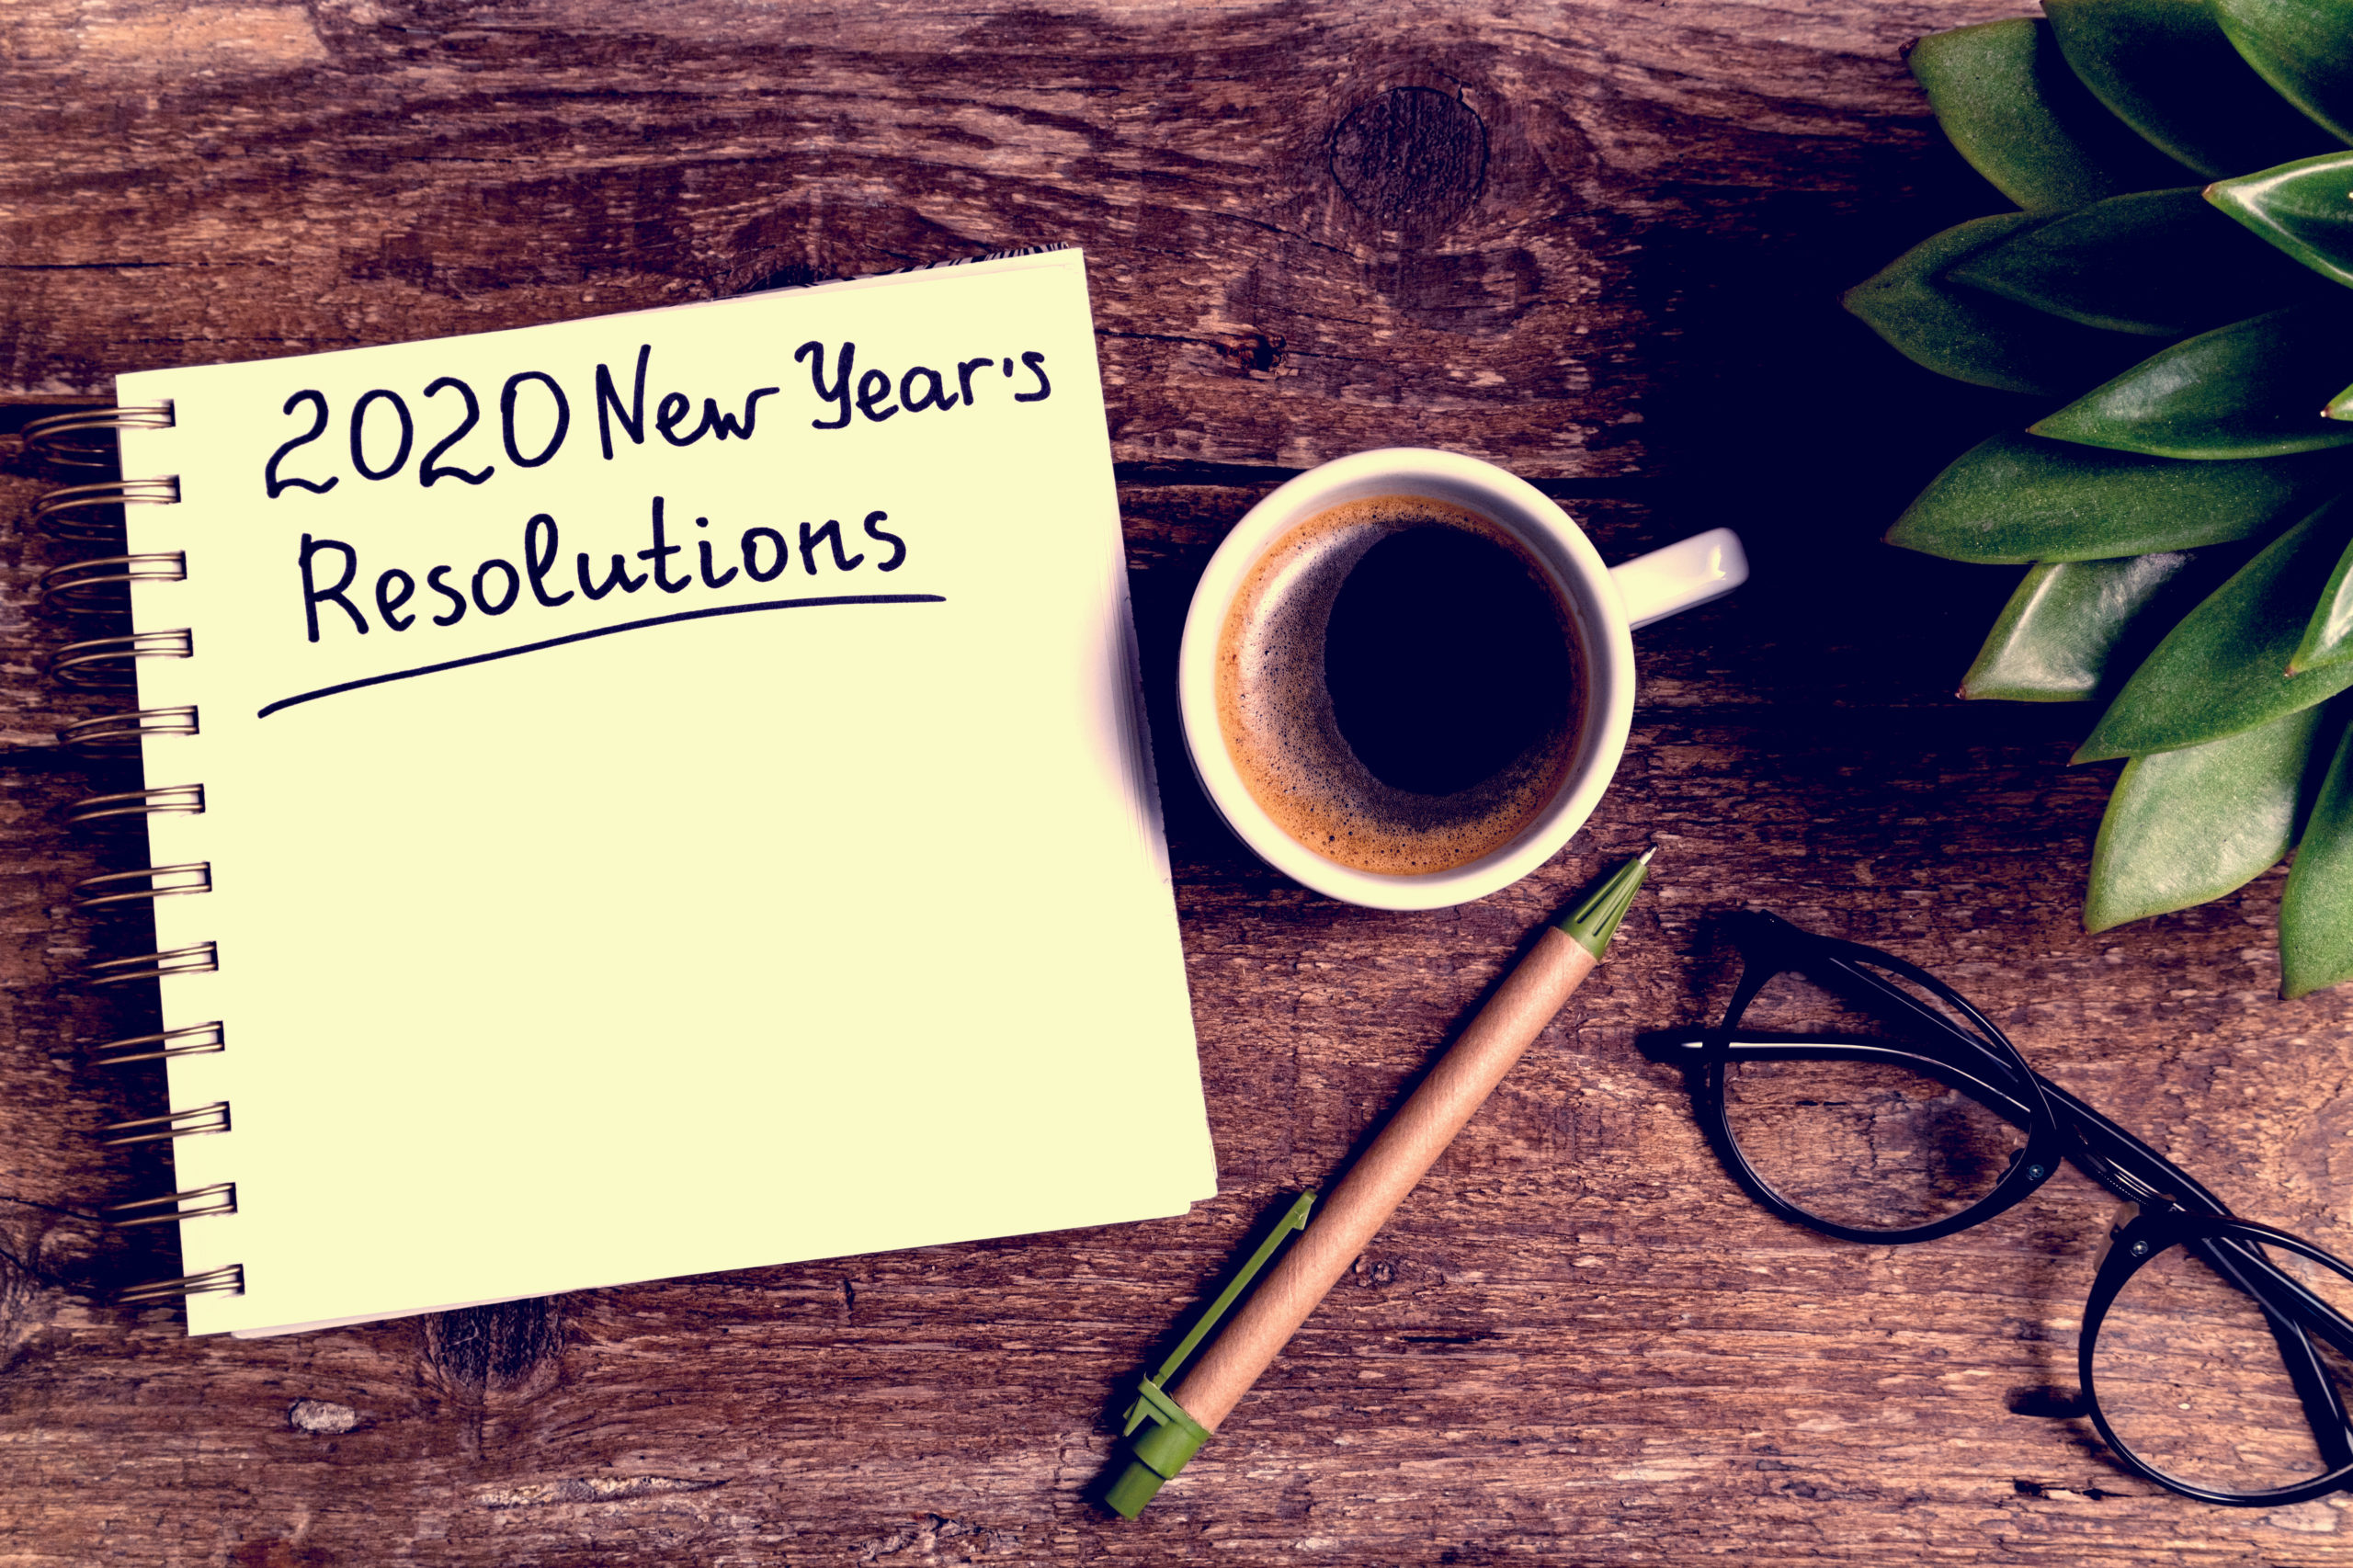 My Public Speaking New Year's Resolutions for 2020